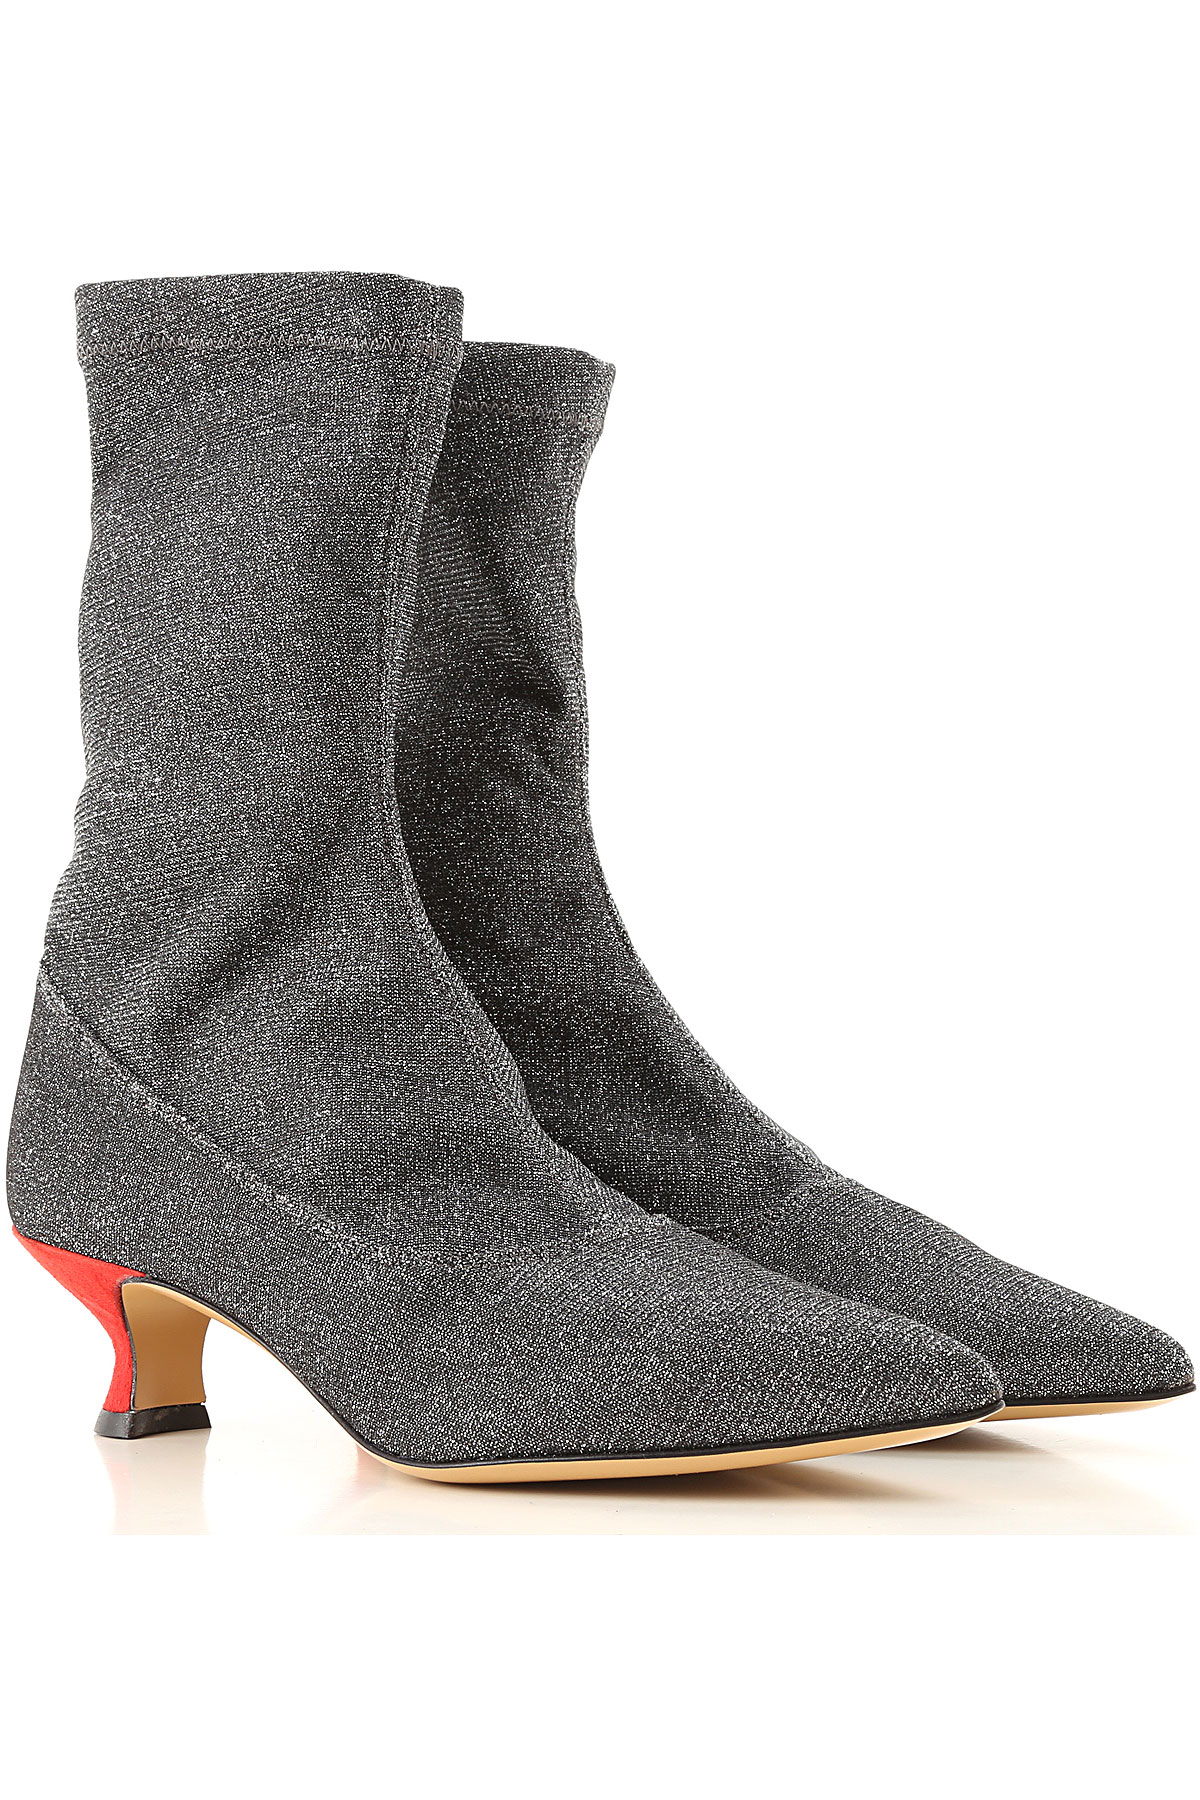 Gia Couture Boots for Women, Booties On Sale, Silver, Leather, 2019, 10 8 9